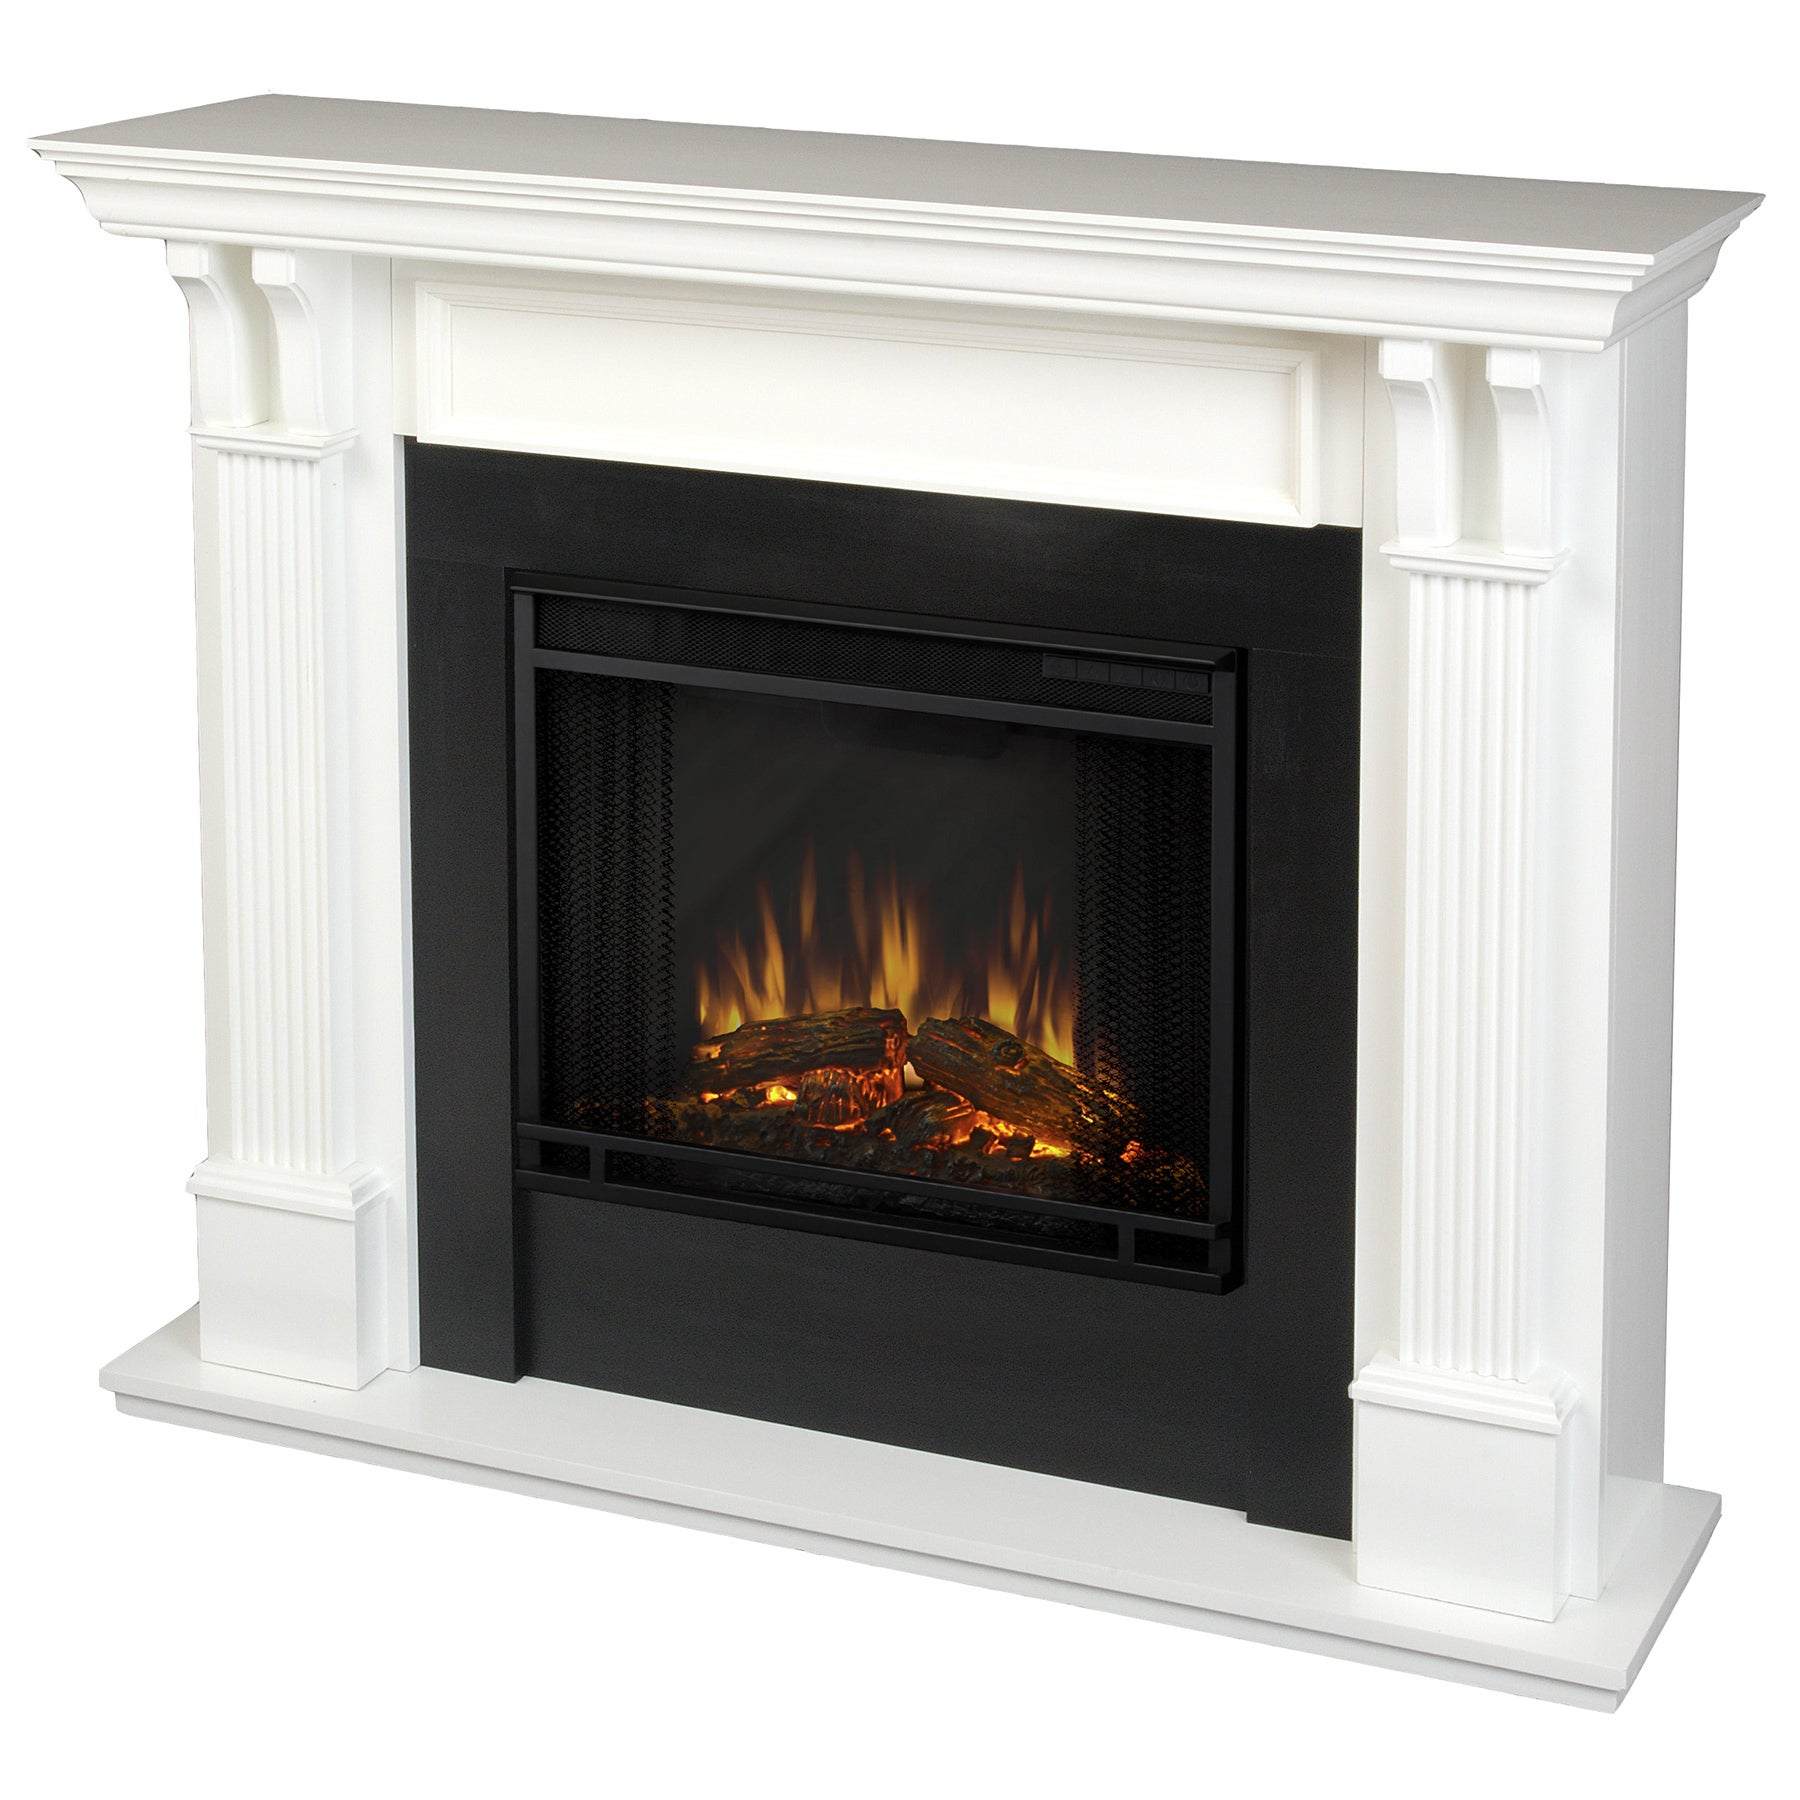 Real flame ashley electric fireplace white free shipping today overstock com 14105096